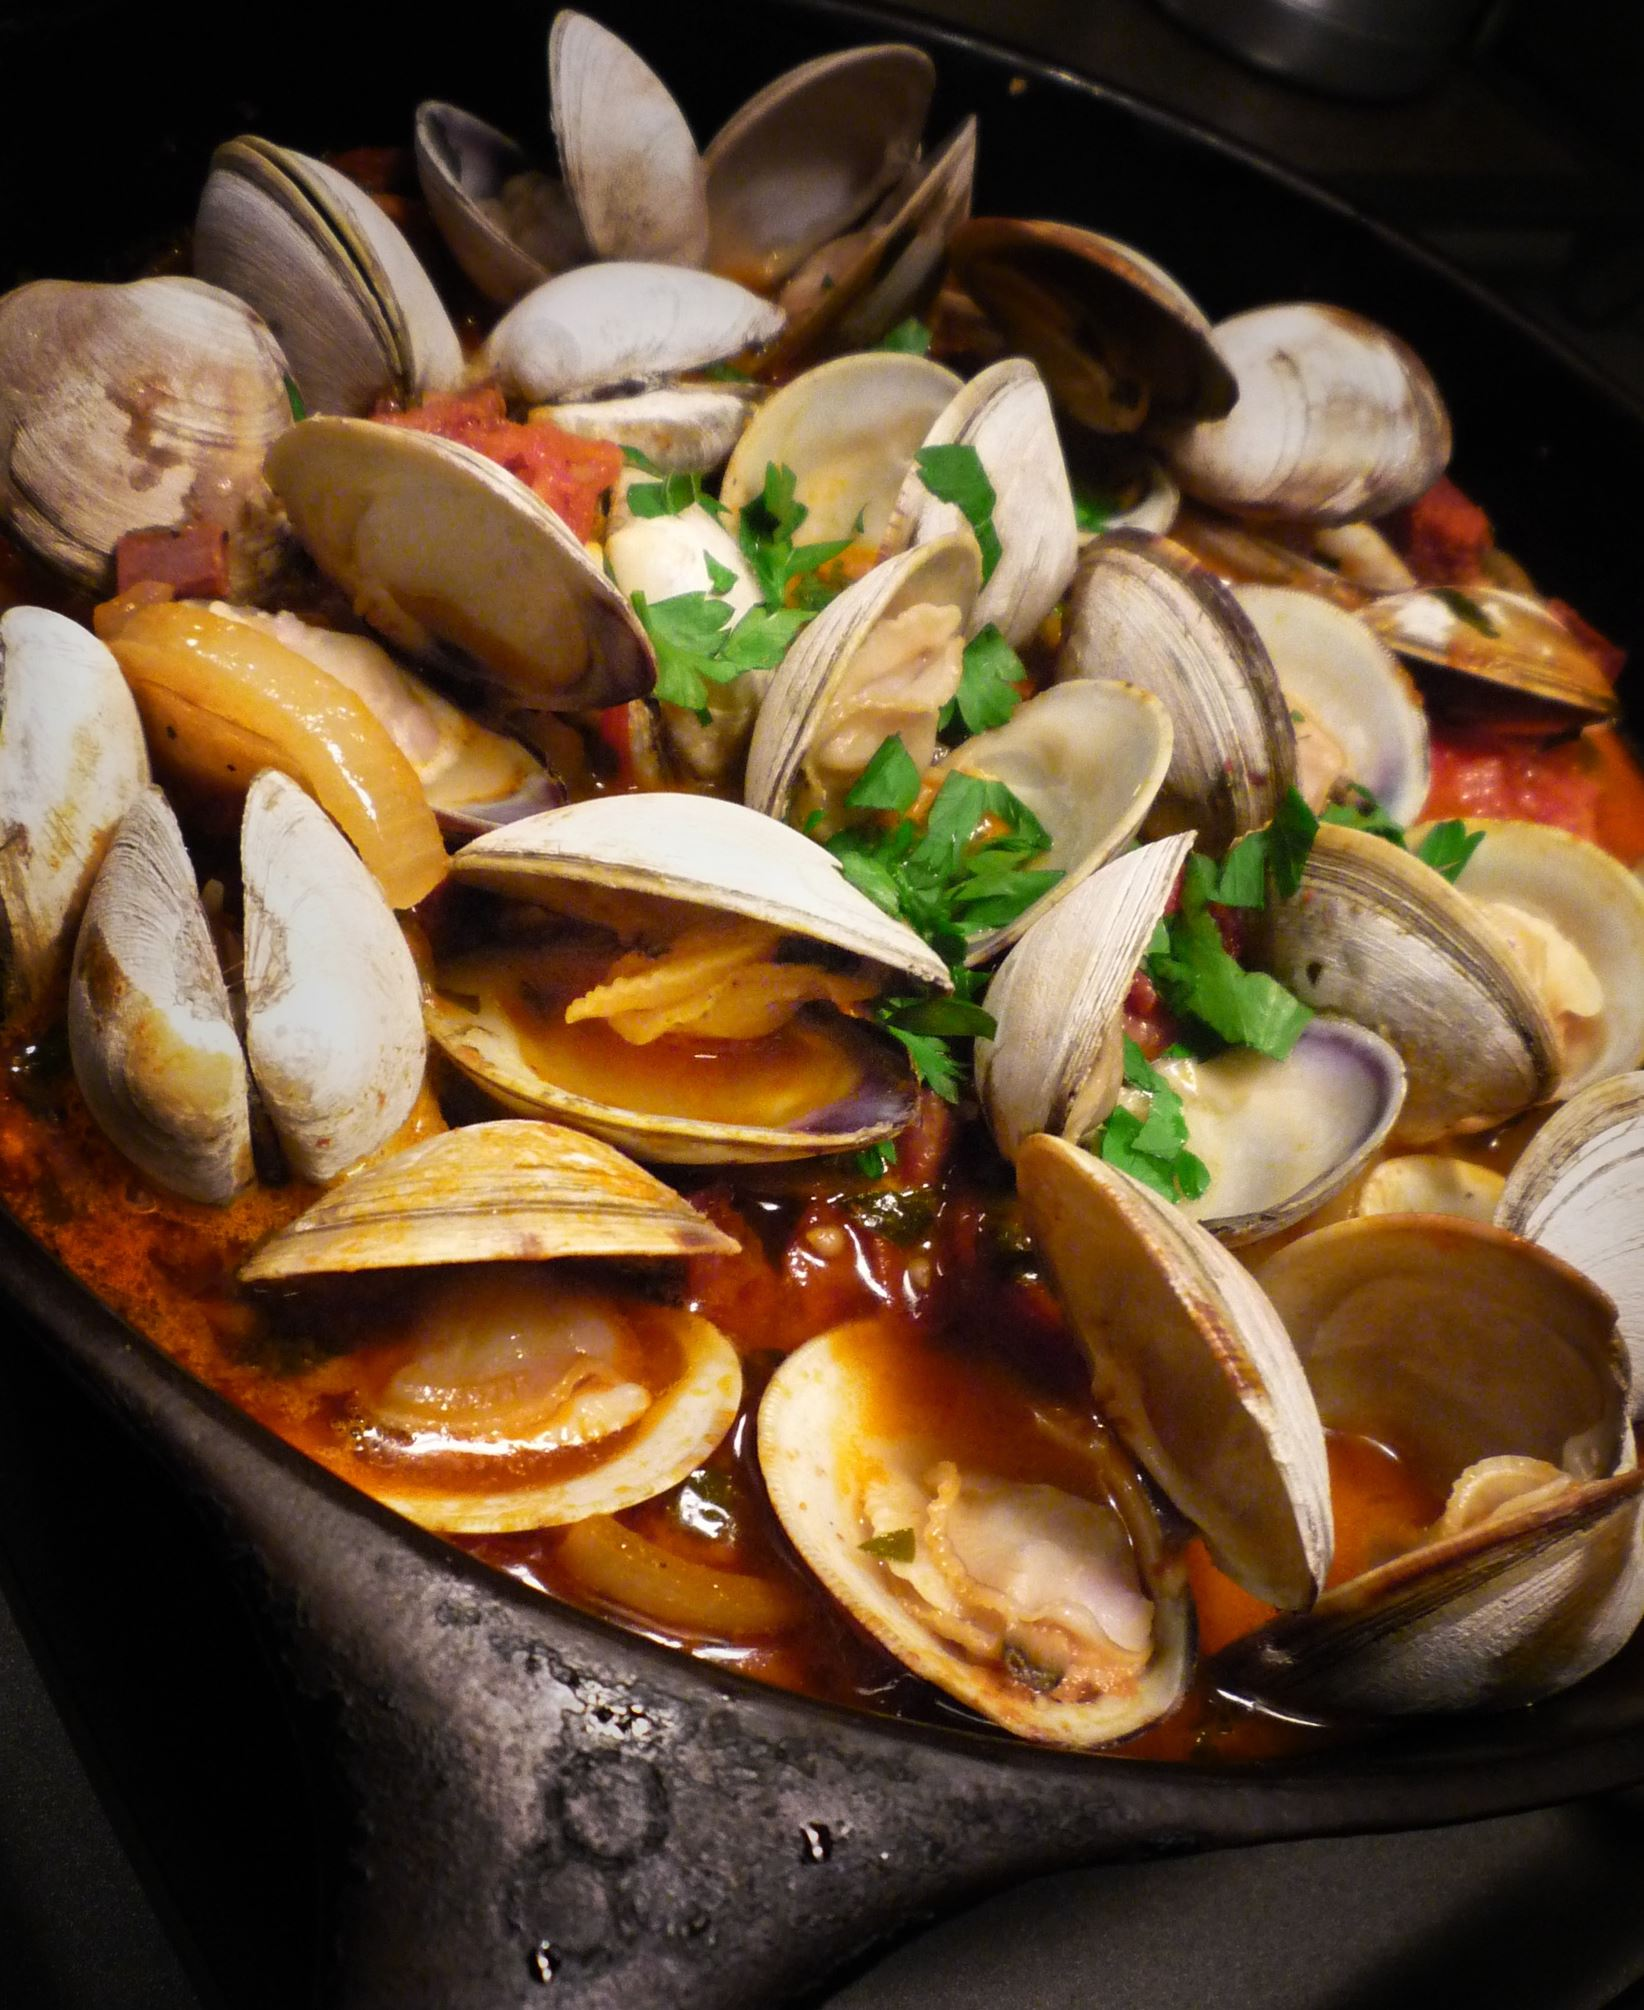 Clams Clams with Sausage, Ham and Spices, a recipe from Portugal that is delicious over rice.